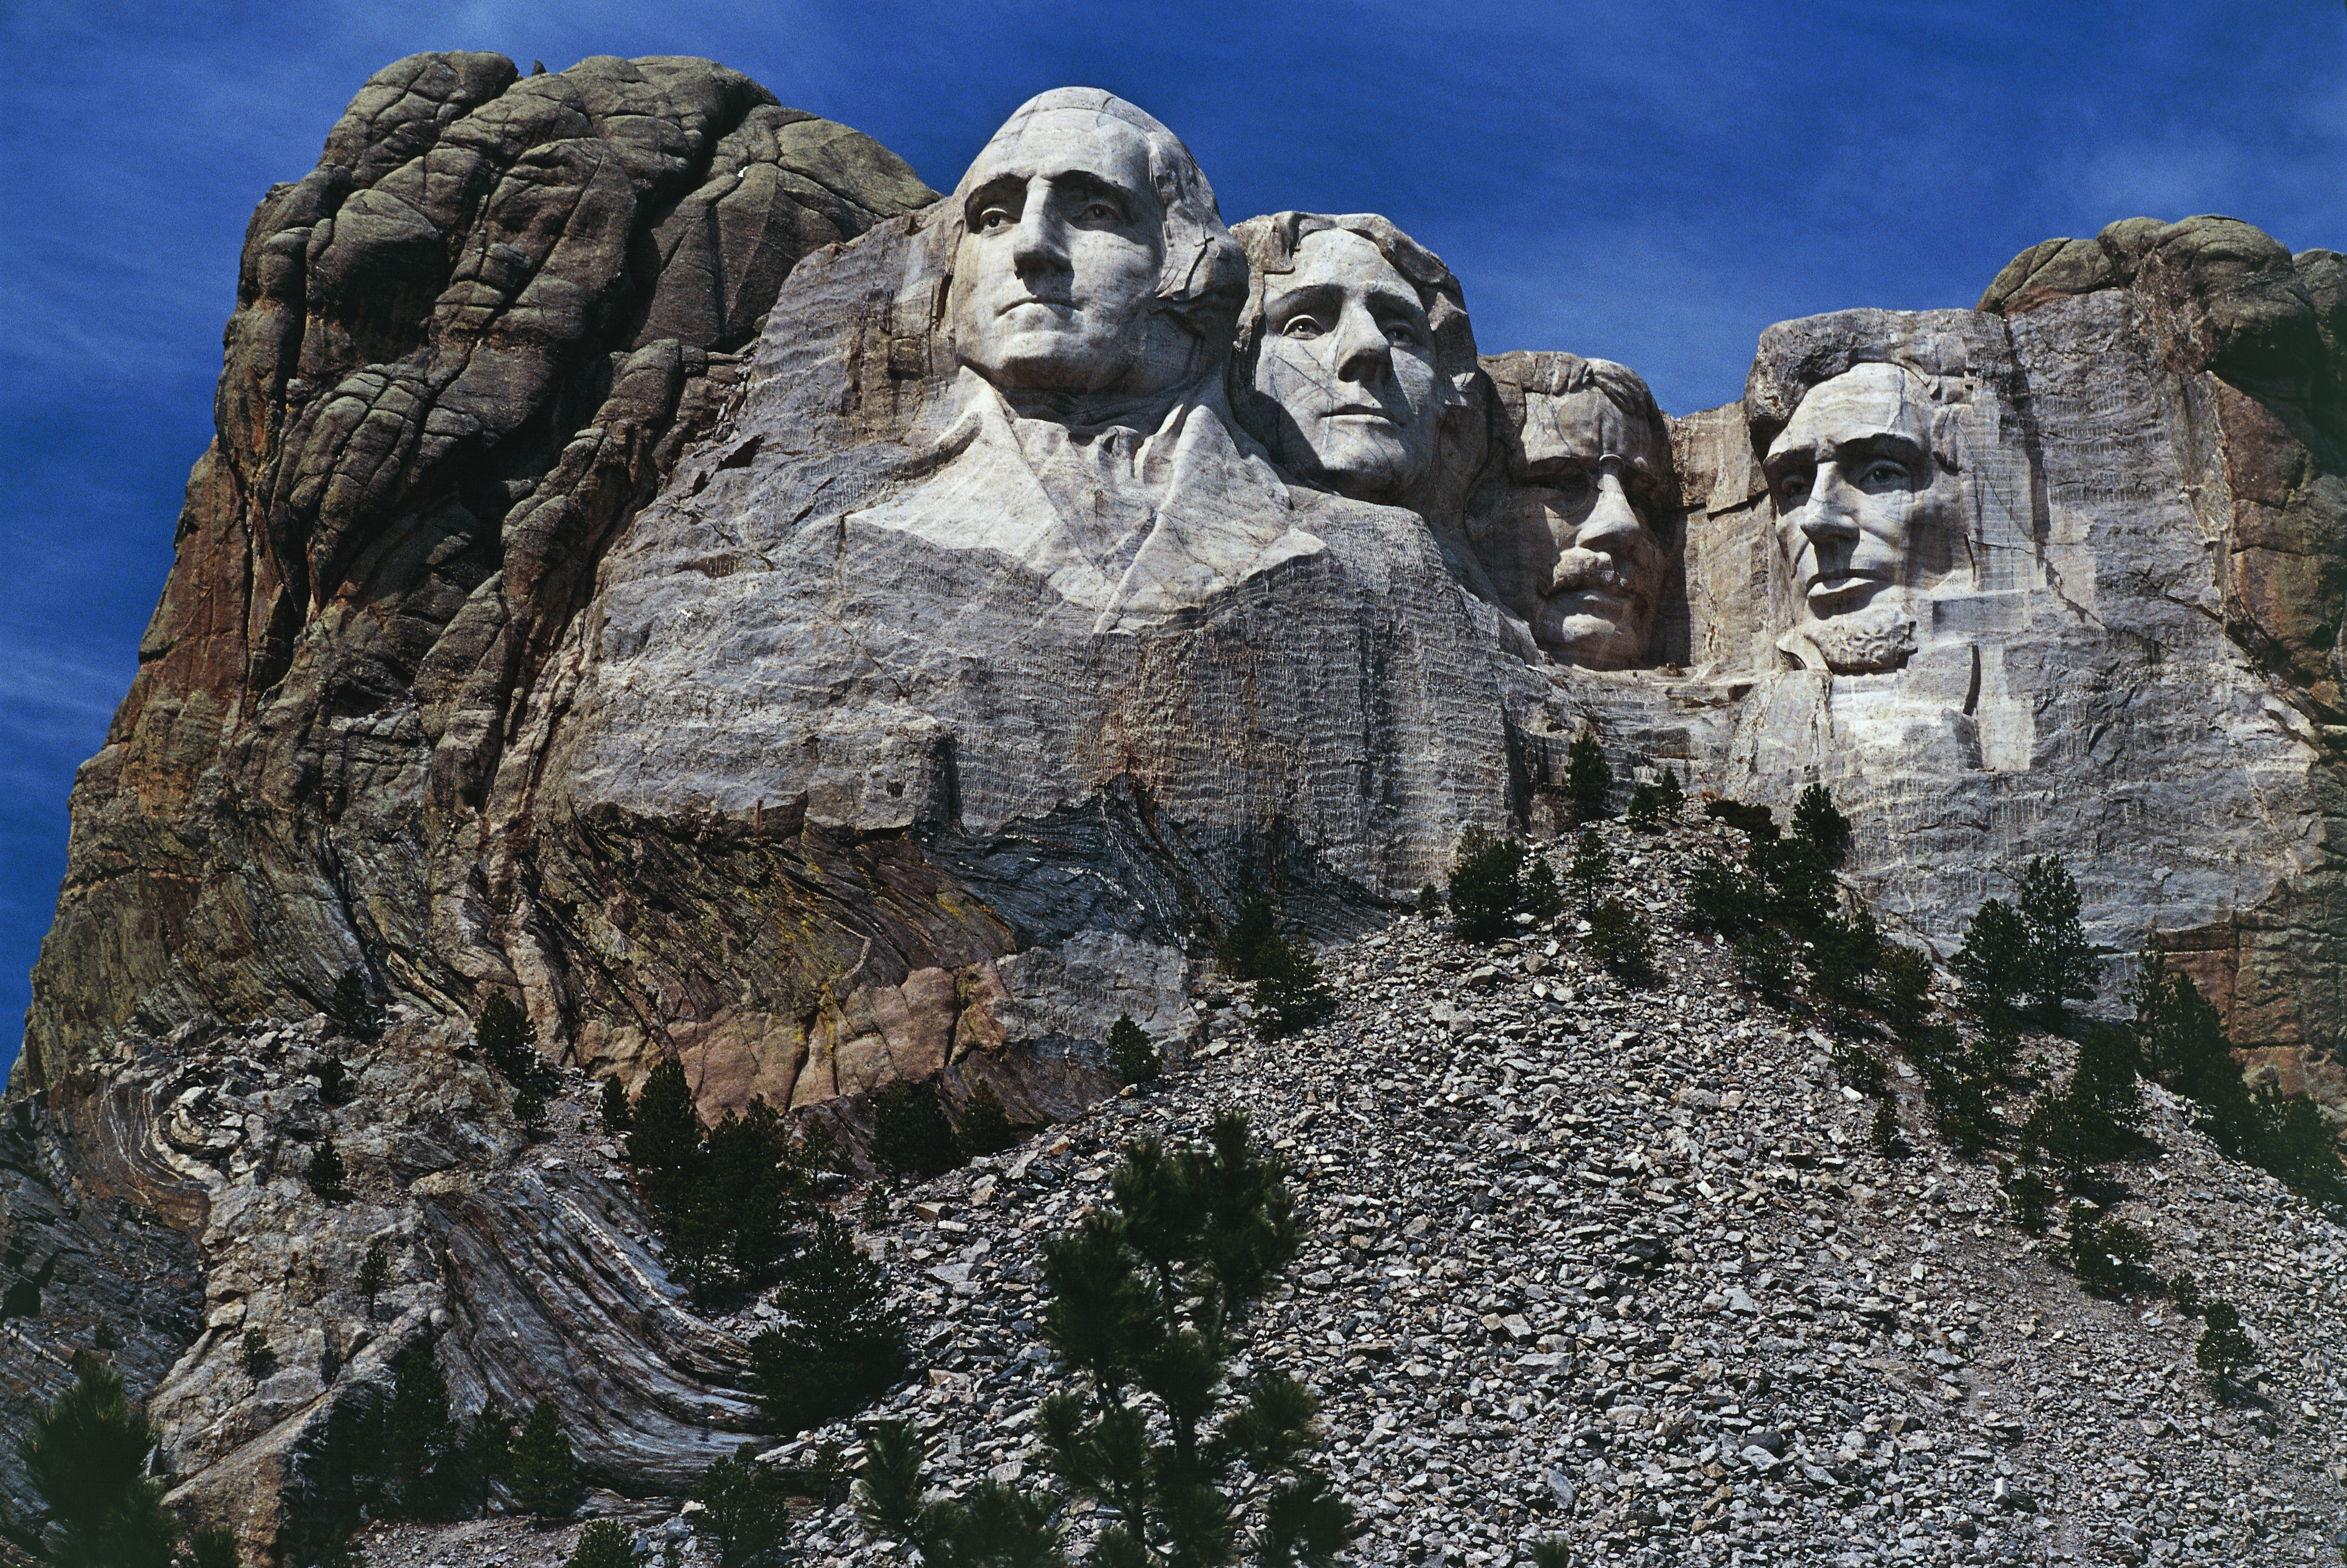 The carved sculptures depicting the faces of US Presidents George Washington (1732-1799) and Thomas Jefferson (1743-1826), National monument, Mount Rushmore, South Dakota, United States of America.